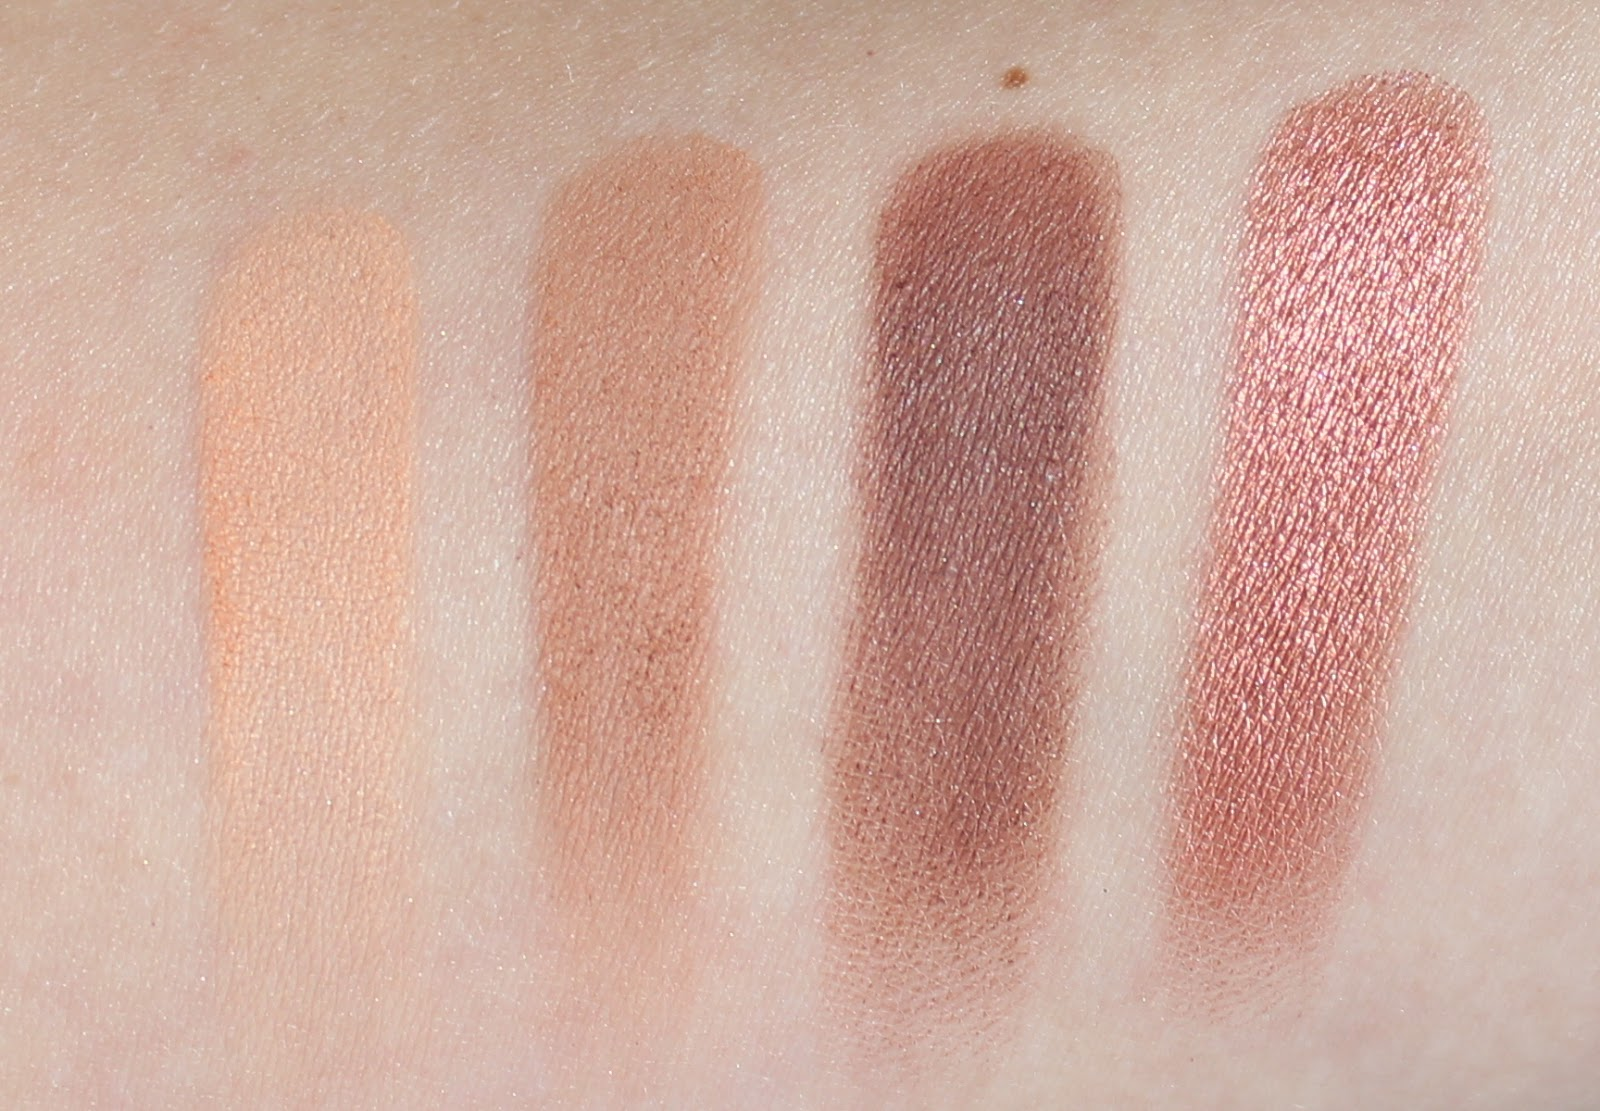 Makeup Geek Eye Shadow Quad Swatches - Warm Tones